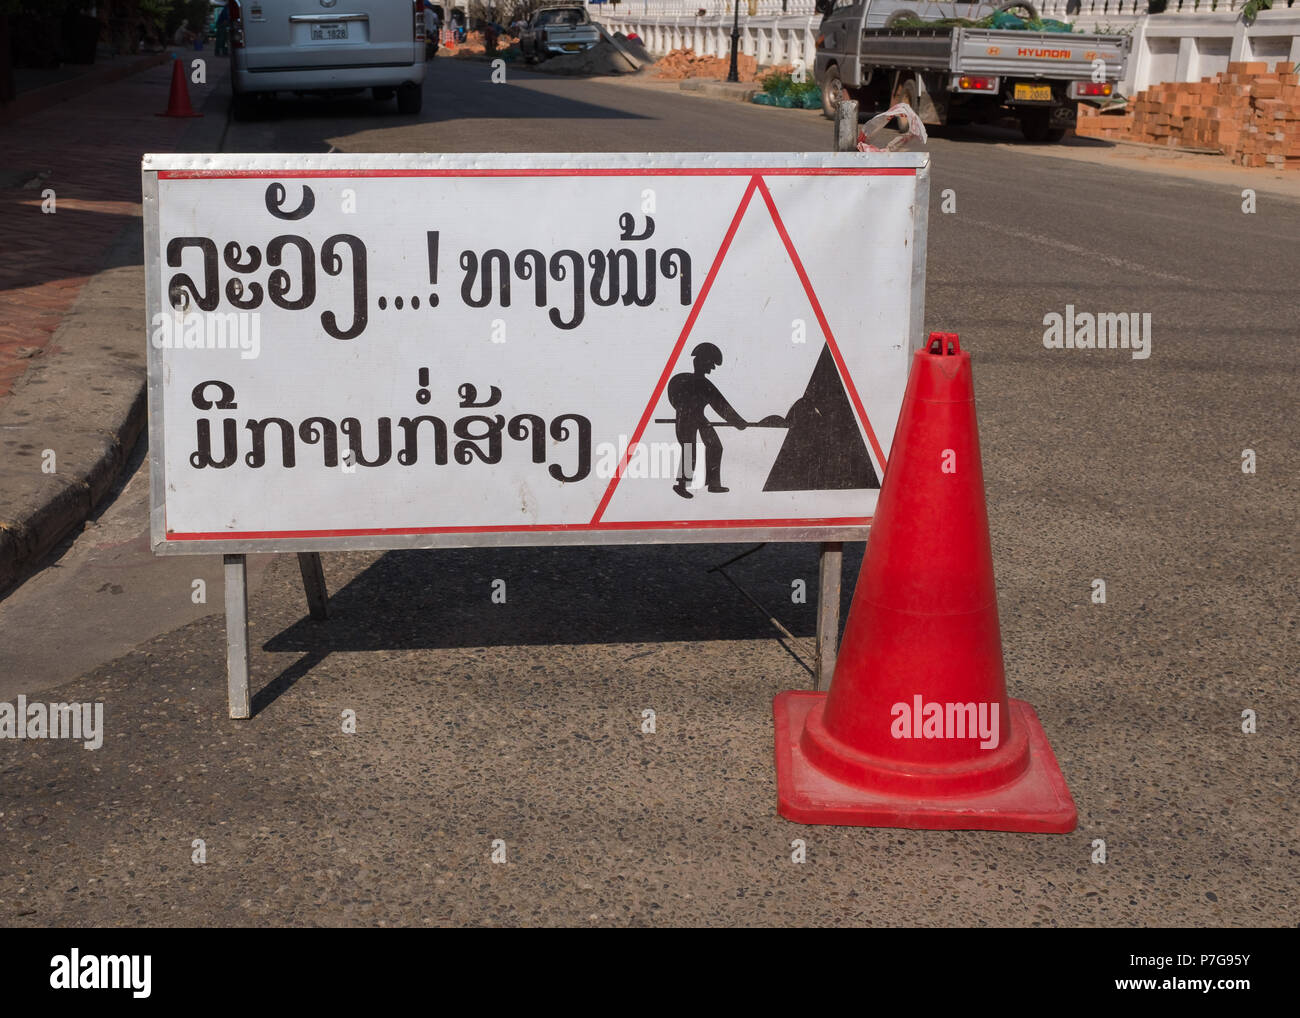 Men at work road sign with traffic cone in Vientiane, Laos, Asia. - Stock Image